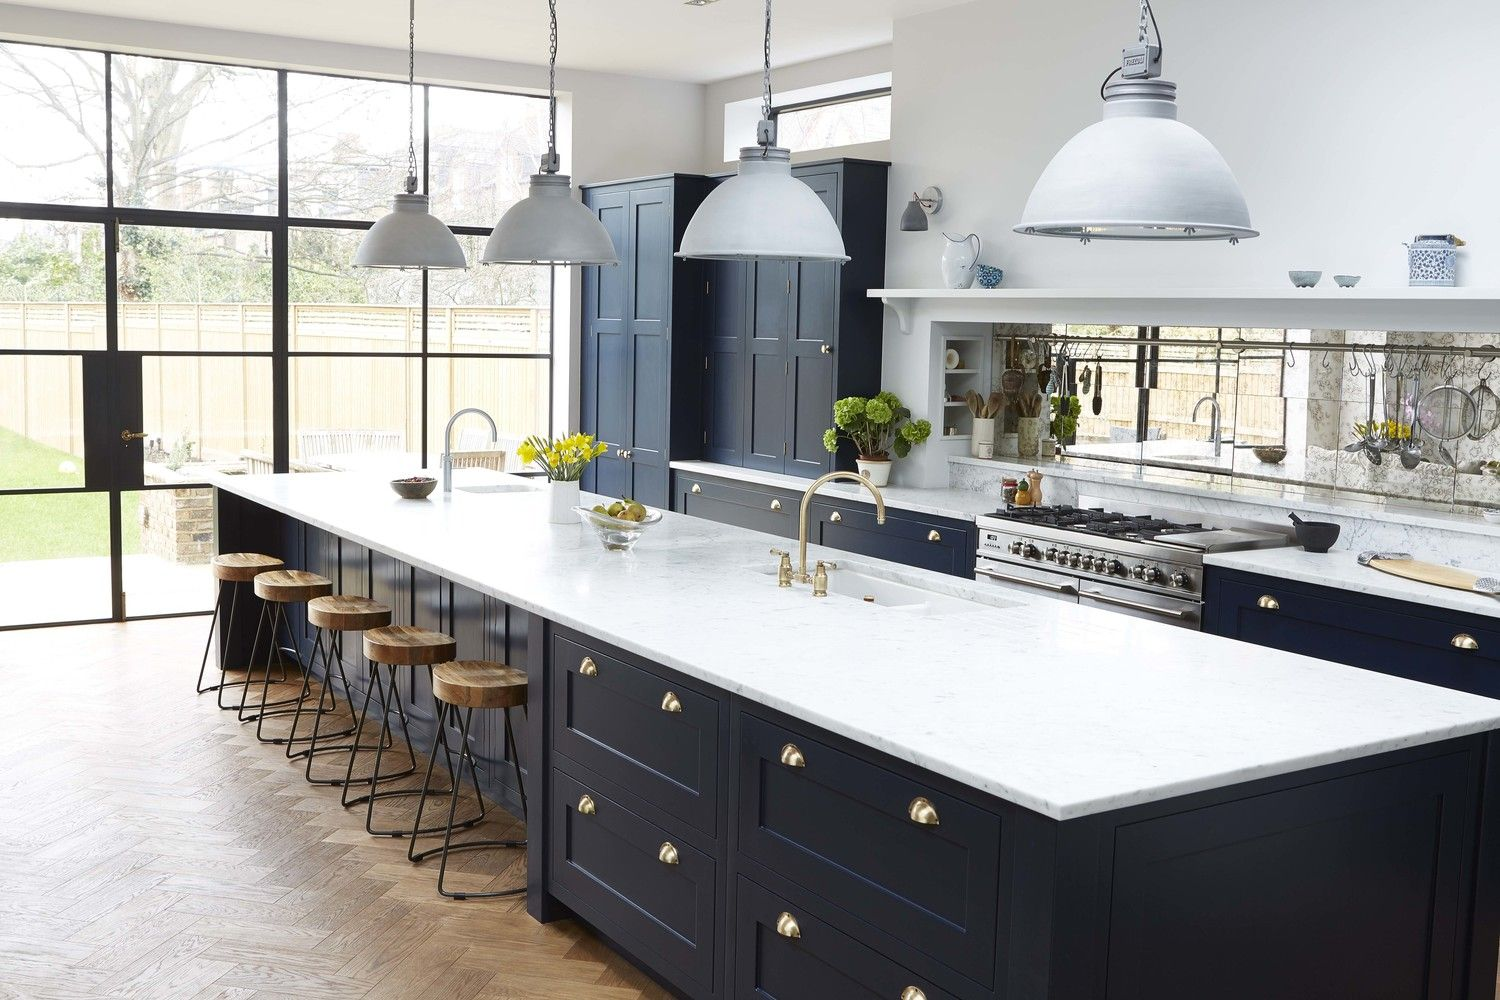 Black Cabinets And Marble Countertop Kitchen Kitchen Design